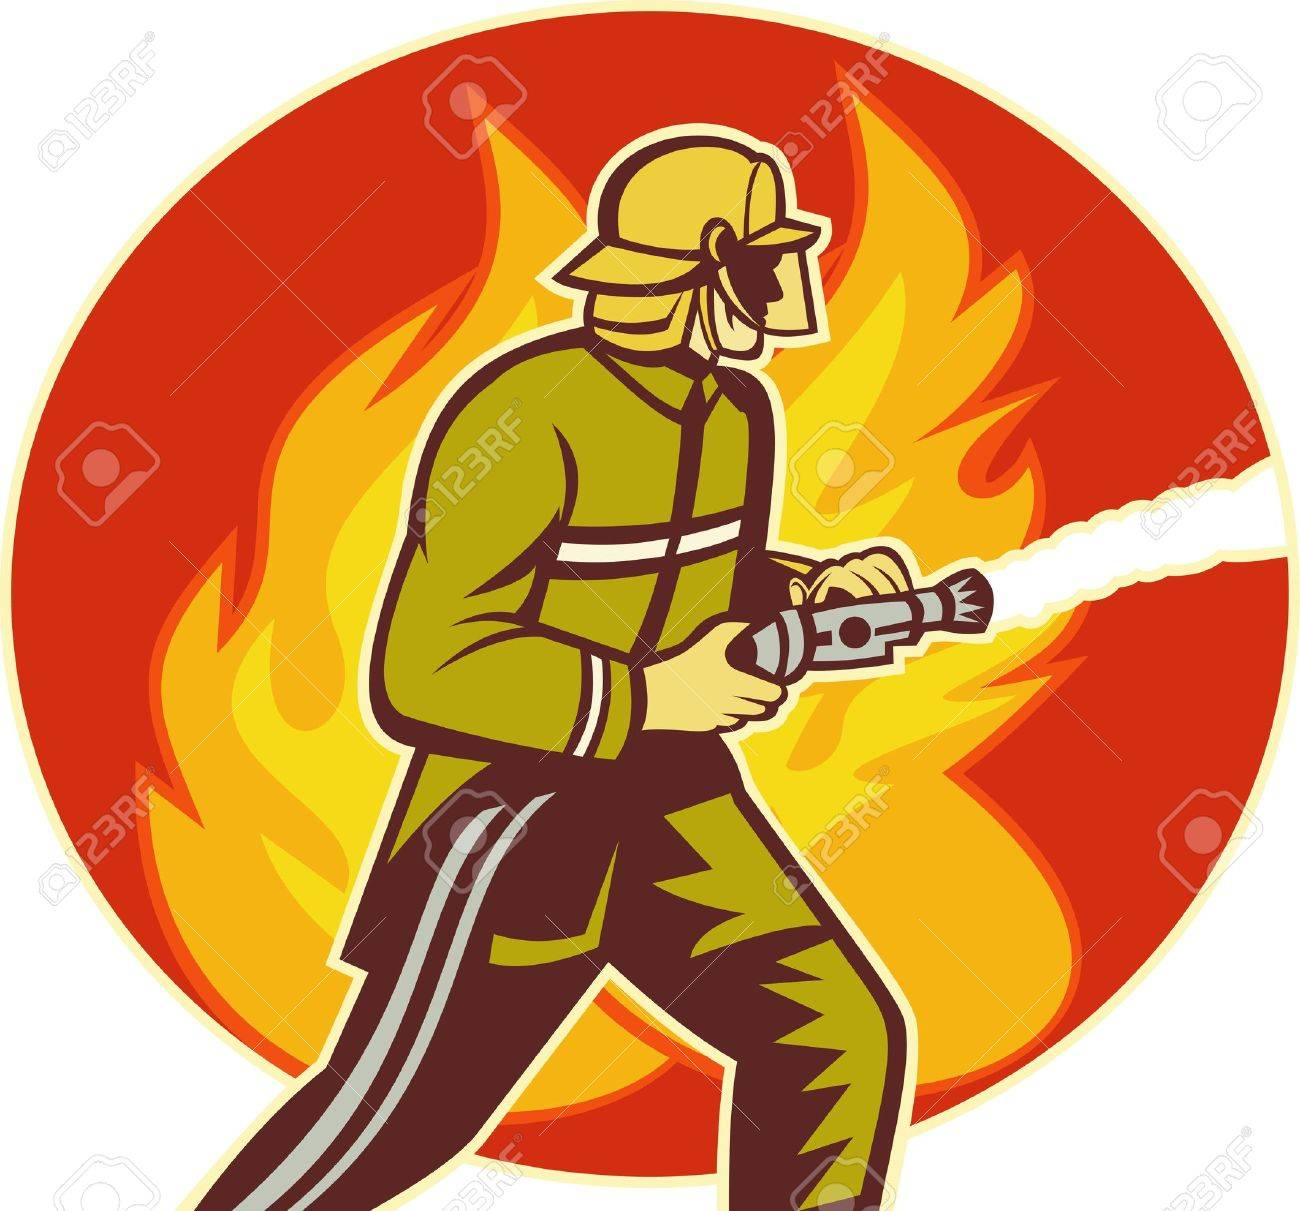 illustration of a Firefighter fireman with water hose fighting fire viewed from the side with flames in background. Stock Illustration - 7490150